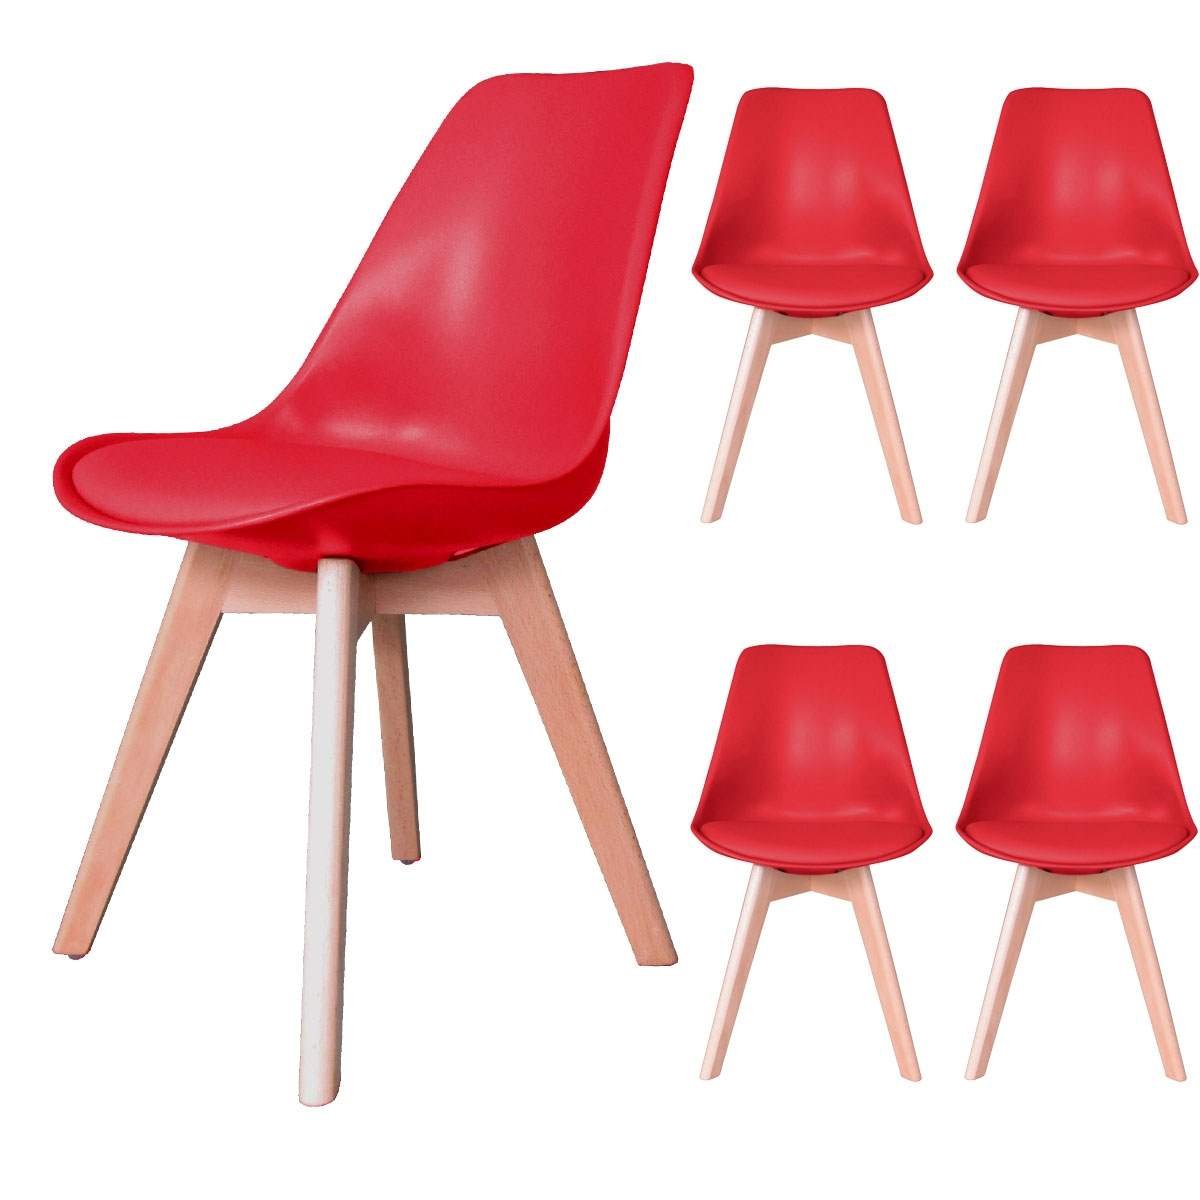 deco in paris 3 lot de 4 chaises scandinave rouge gala gala rouge x4. Black Bedroom Furniture Sets. Home Design Ideas